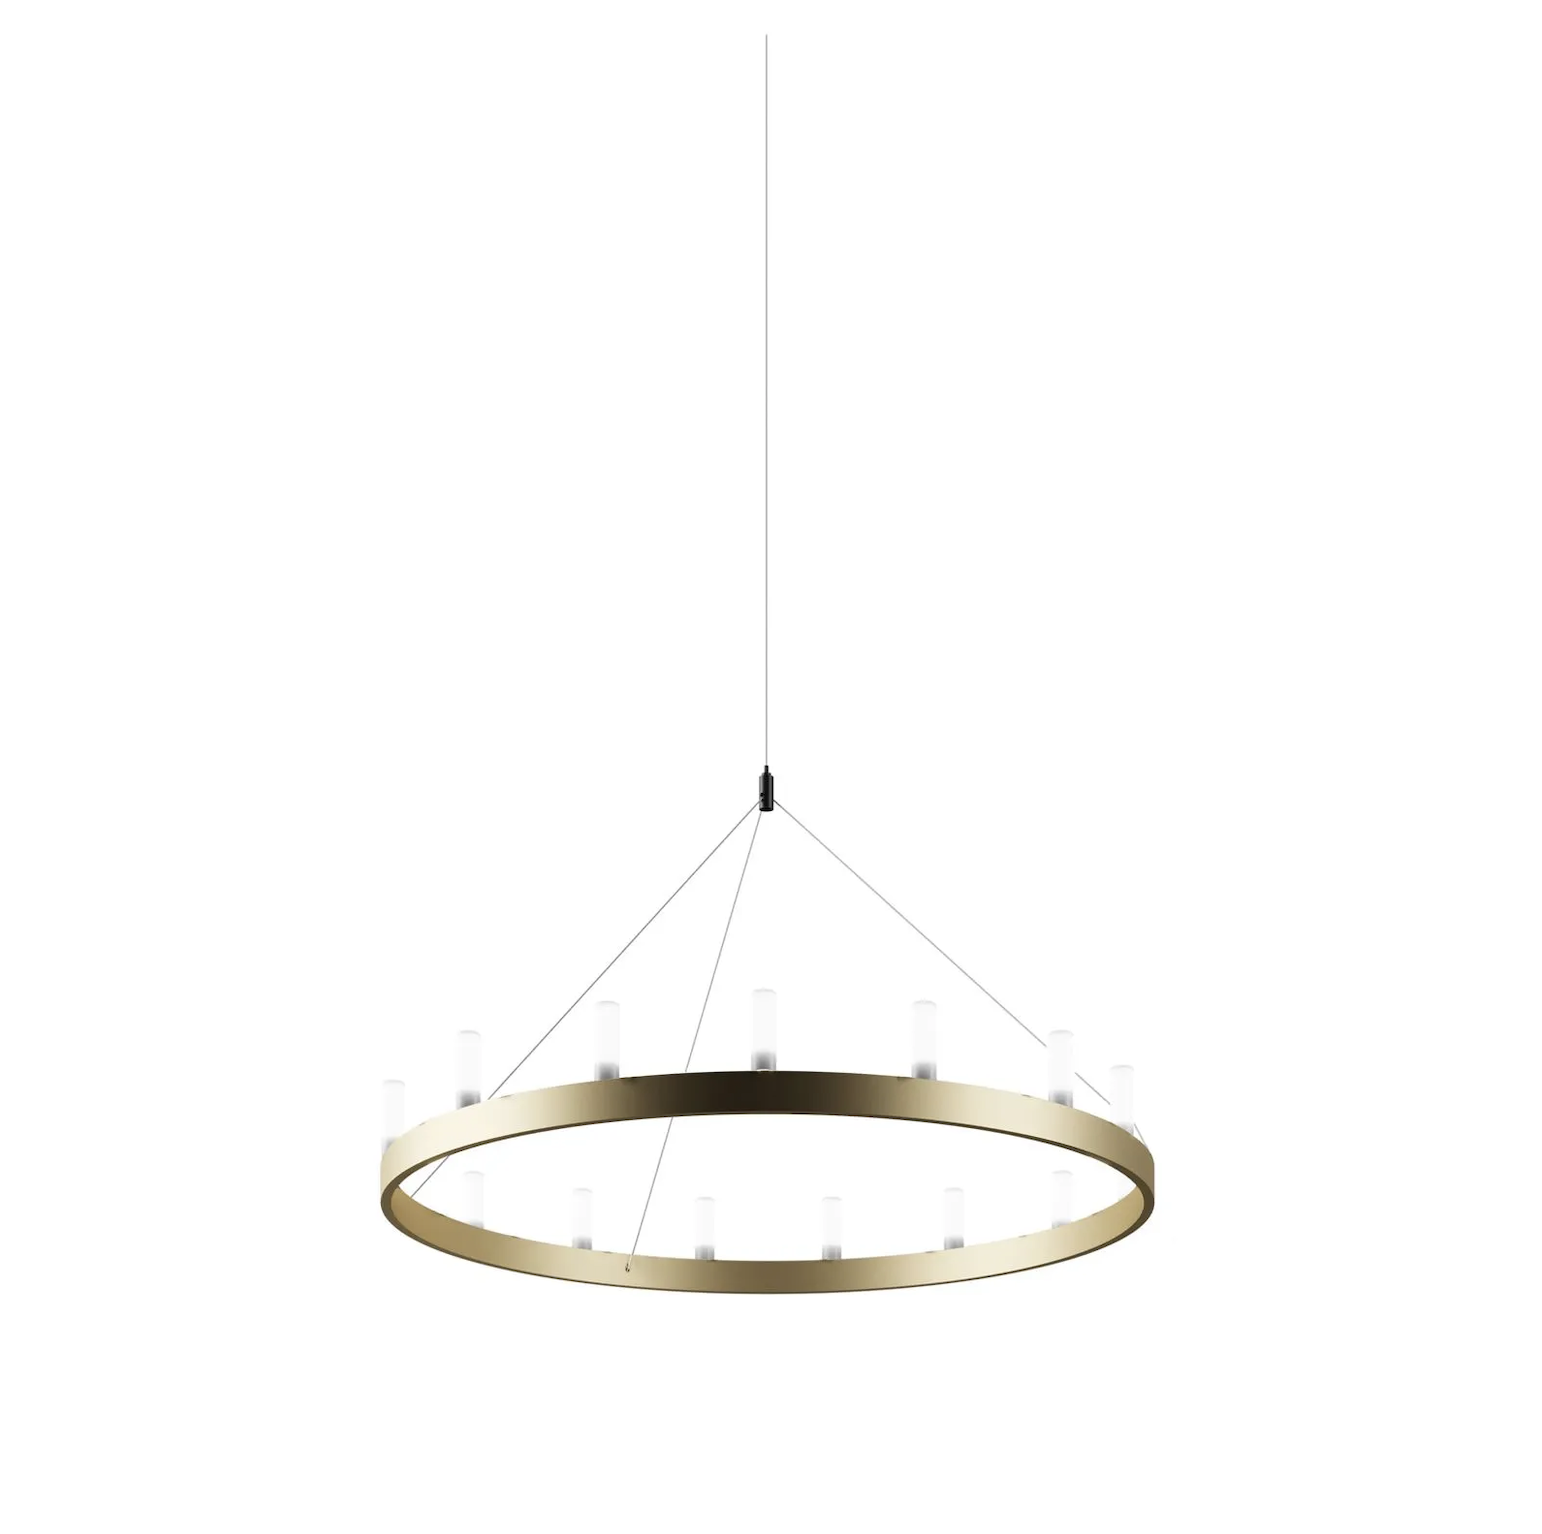 Chandelier Suspension Lamp - This spectacular lamp designed by David Chipperfield is inspired by those at the court of King Arthur. Available in two colours, in a single or double version with two concentric circles, it is a classy elegant lighting solution for any setting, even the most modern and minimal.New gold finishing, absence of tiges, 5 m length cables.  Suspension lamp with indirect and dimmable light. Painted metal frame. Sandblasted borosilicate glass diffusers. Steel suspension cable. Transparent power cable. Painted metal ceiling rose. Bulb not included. | Matter of Stuff